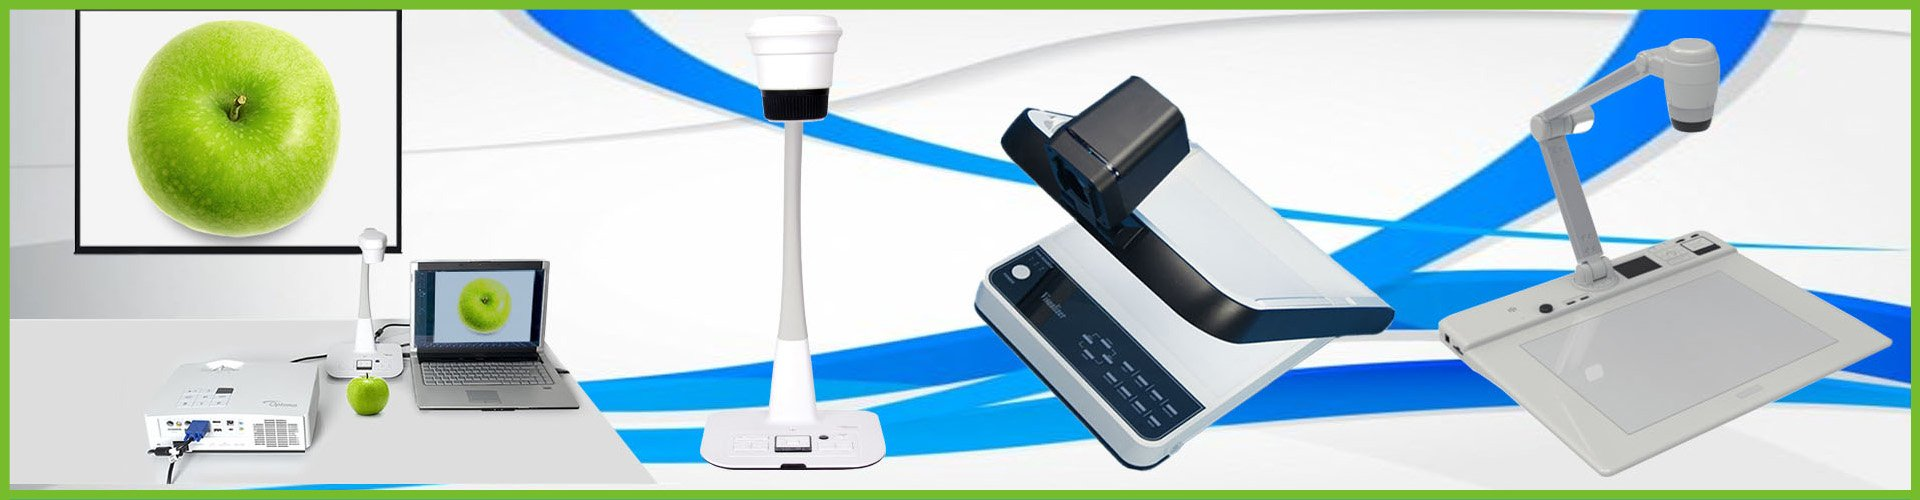 Why we need to go from Full HD to Ultra HD document camera?